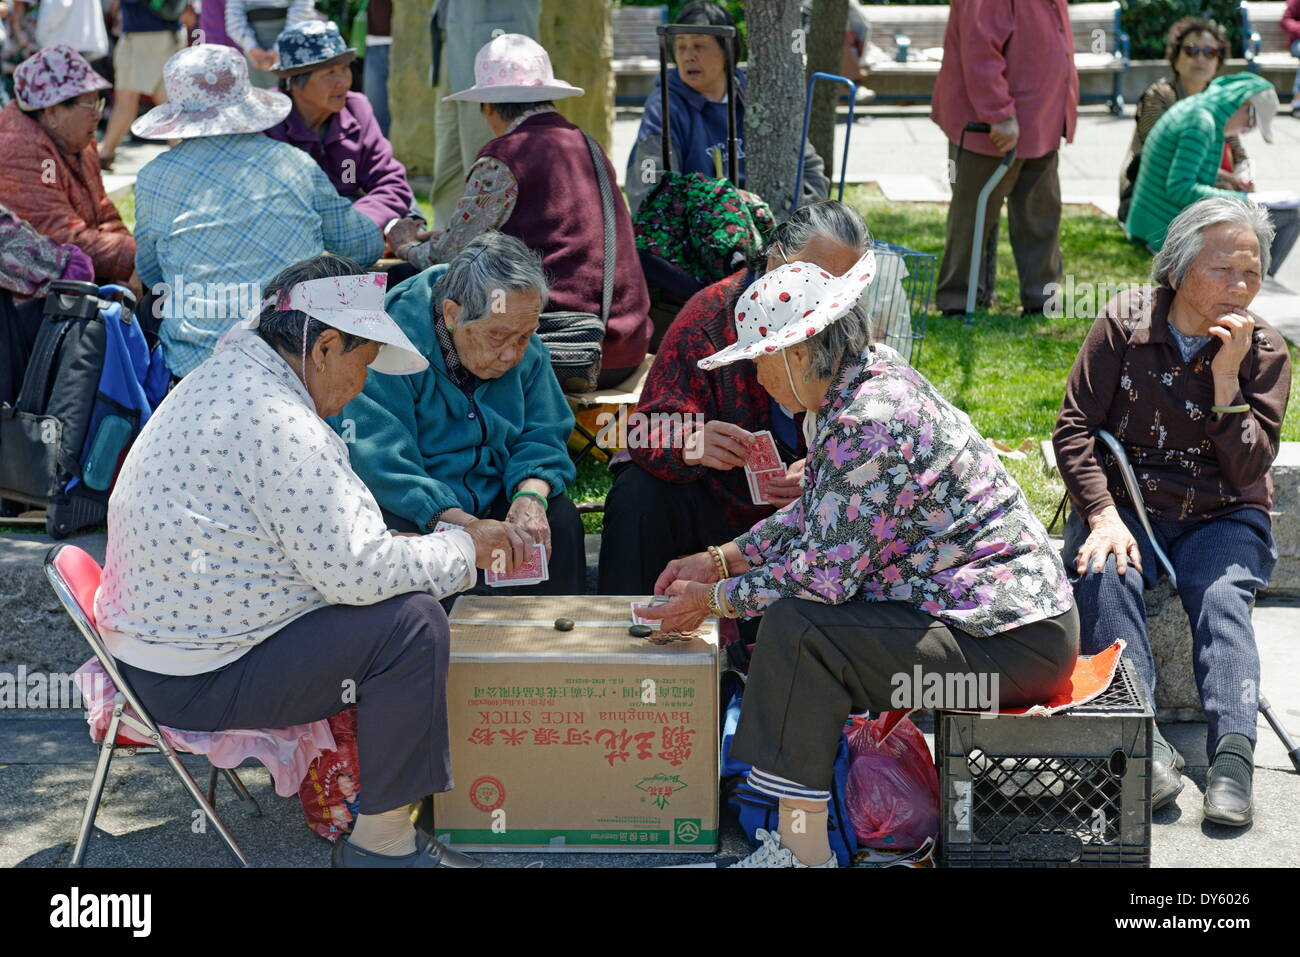 People playing Chinese chess at Portsmouth Square in Chinatown, San Francisco, California, USA - Stock Image